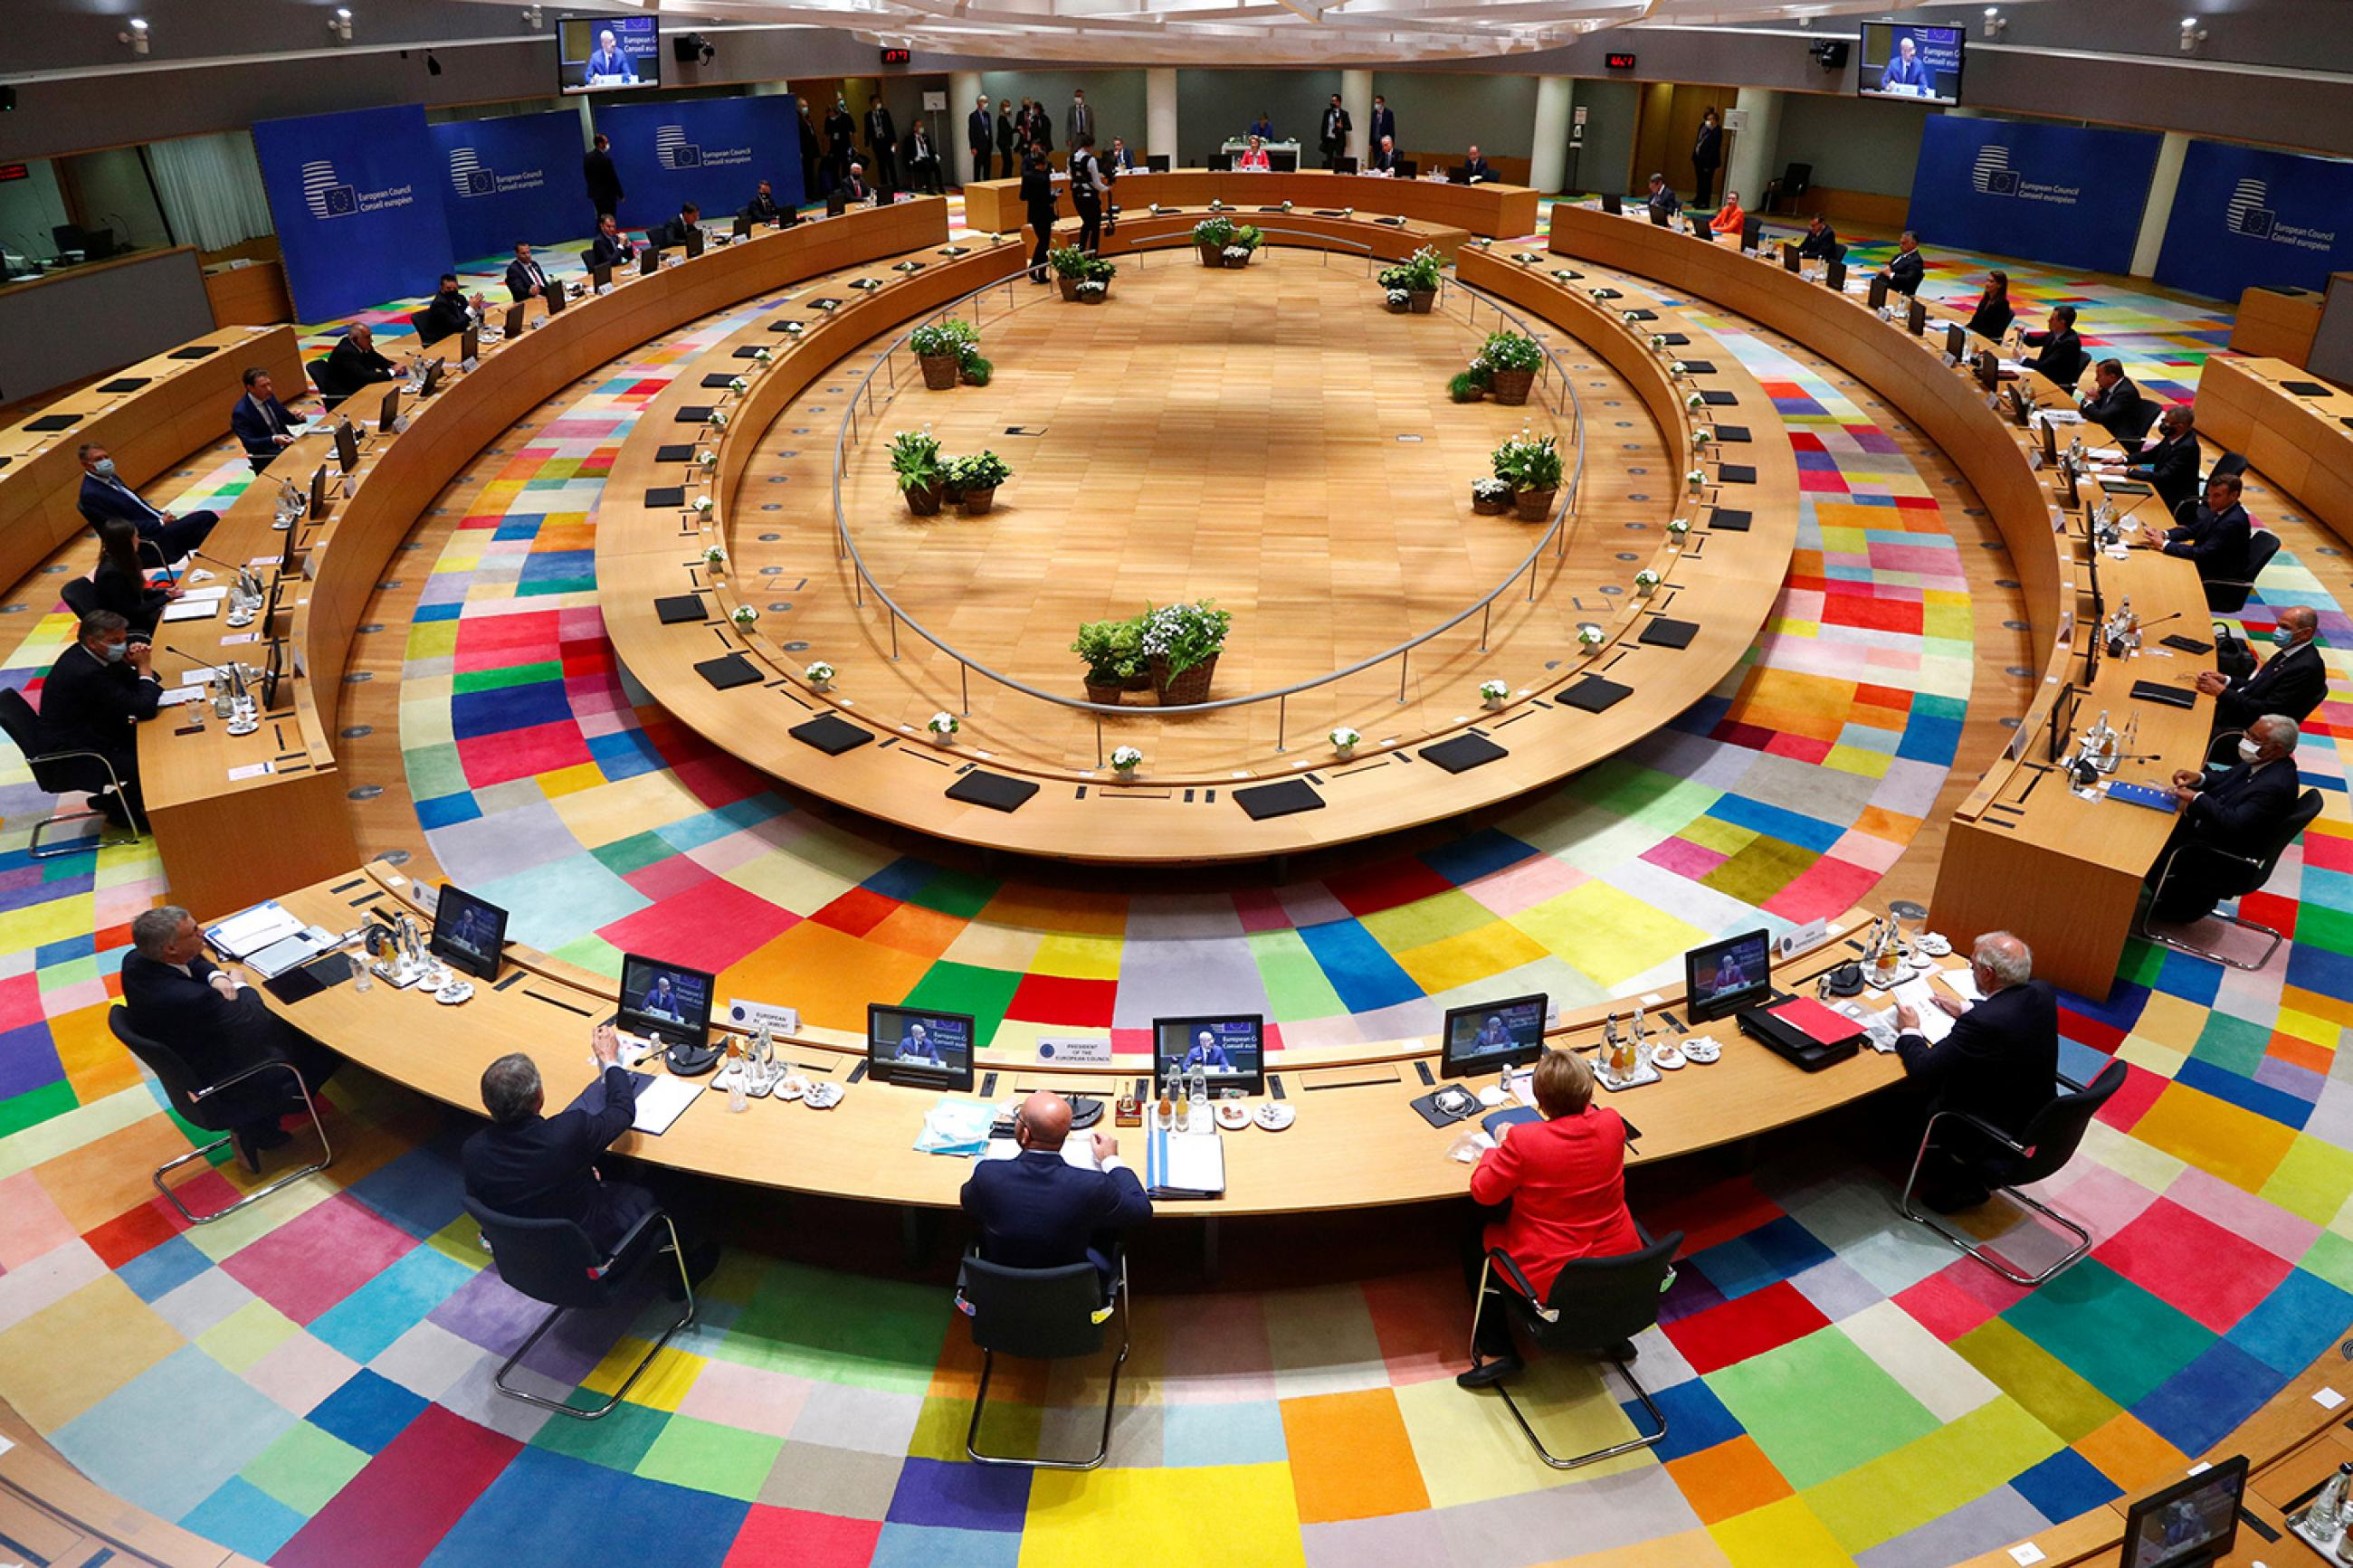 Where policy meets health: European Union leaders take part in the first face-to-face EU summit since the coronavirus disease (COVID-19) outbreak began, in Brussels, Belgium, on July 17, 2020. The photo shows a large round table from above with various leaders seated far apart from one another. REUTERS/Francois Lenoir